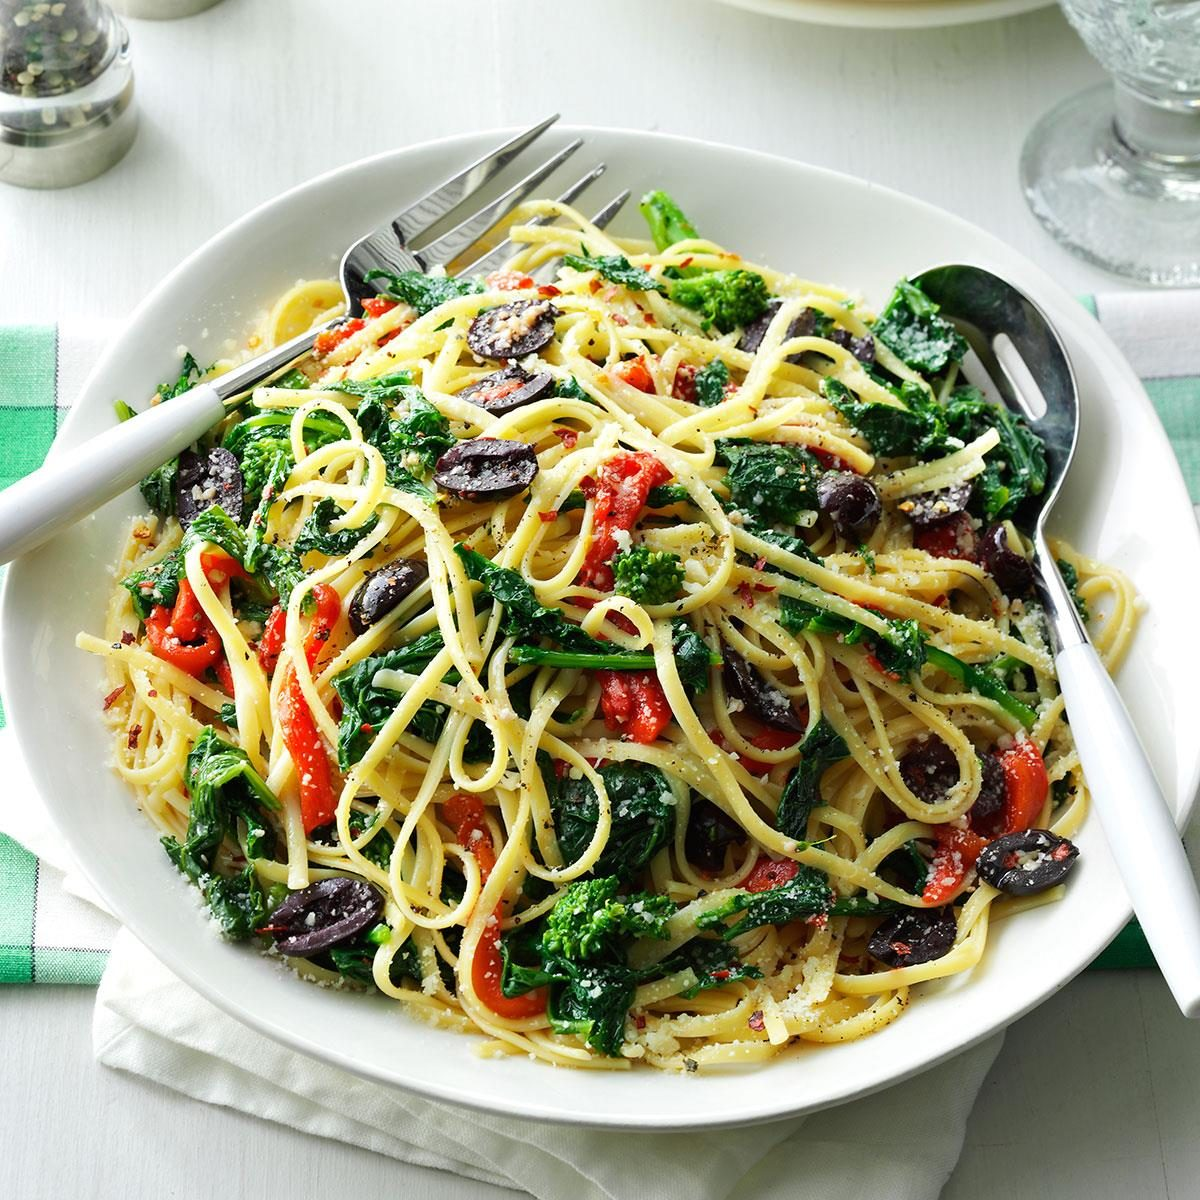 Wednesday: Linguine with Broccoli Rabe & Peppers